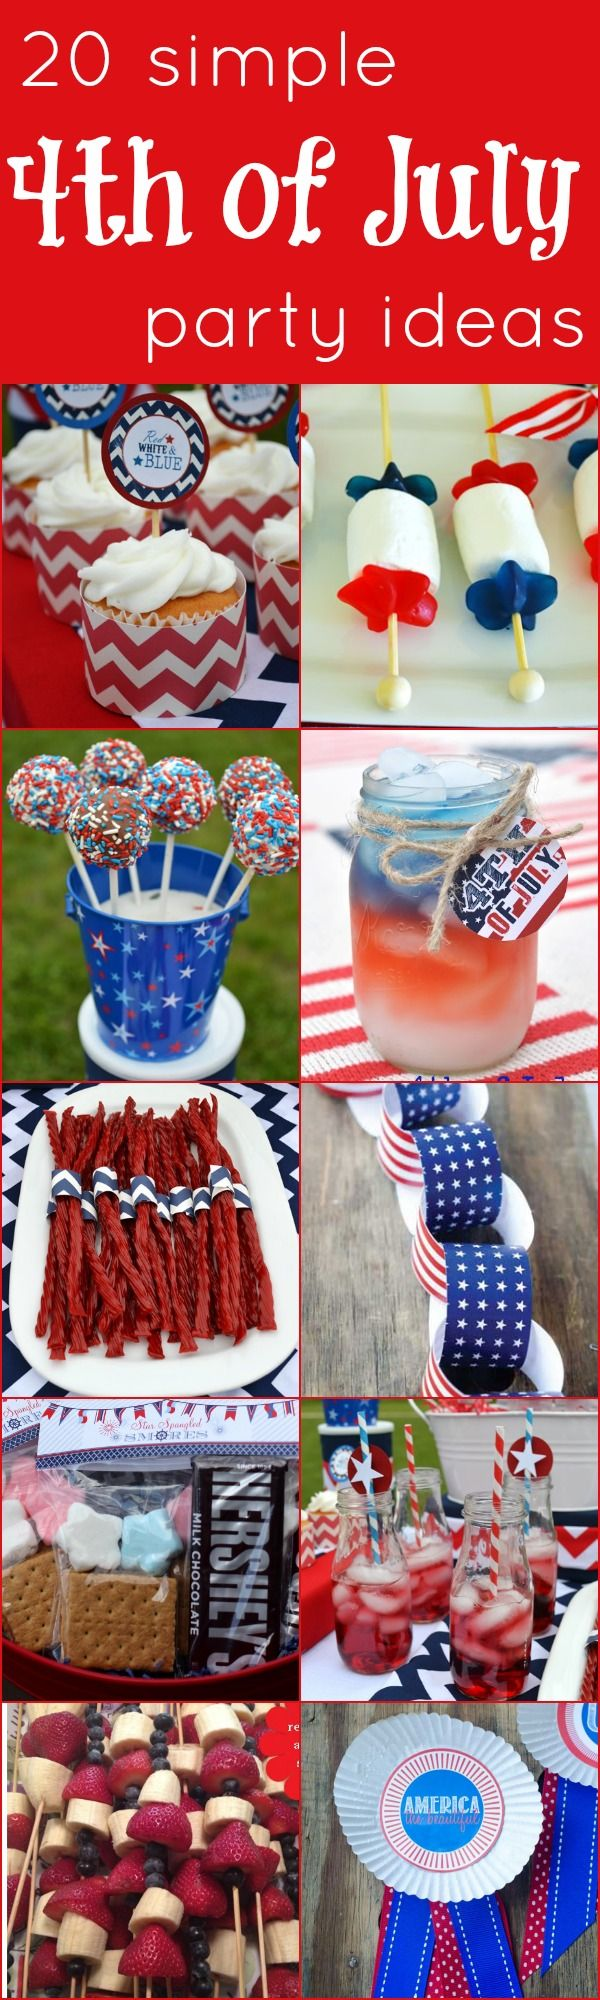 20 Simple 4th of July Party Ideas